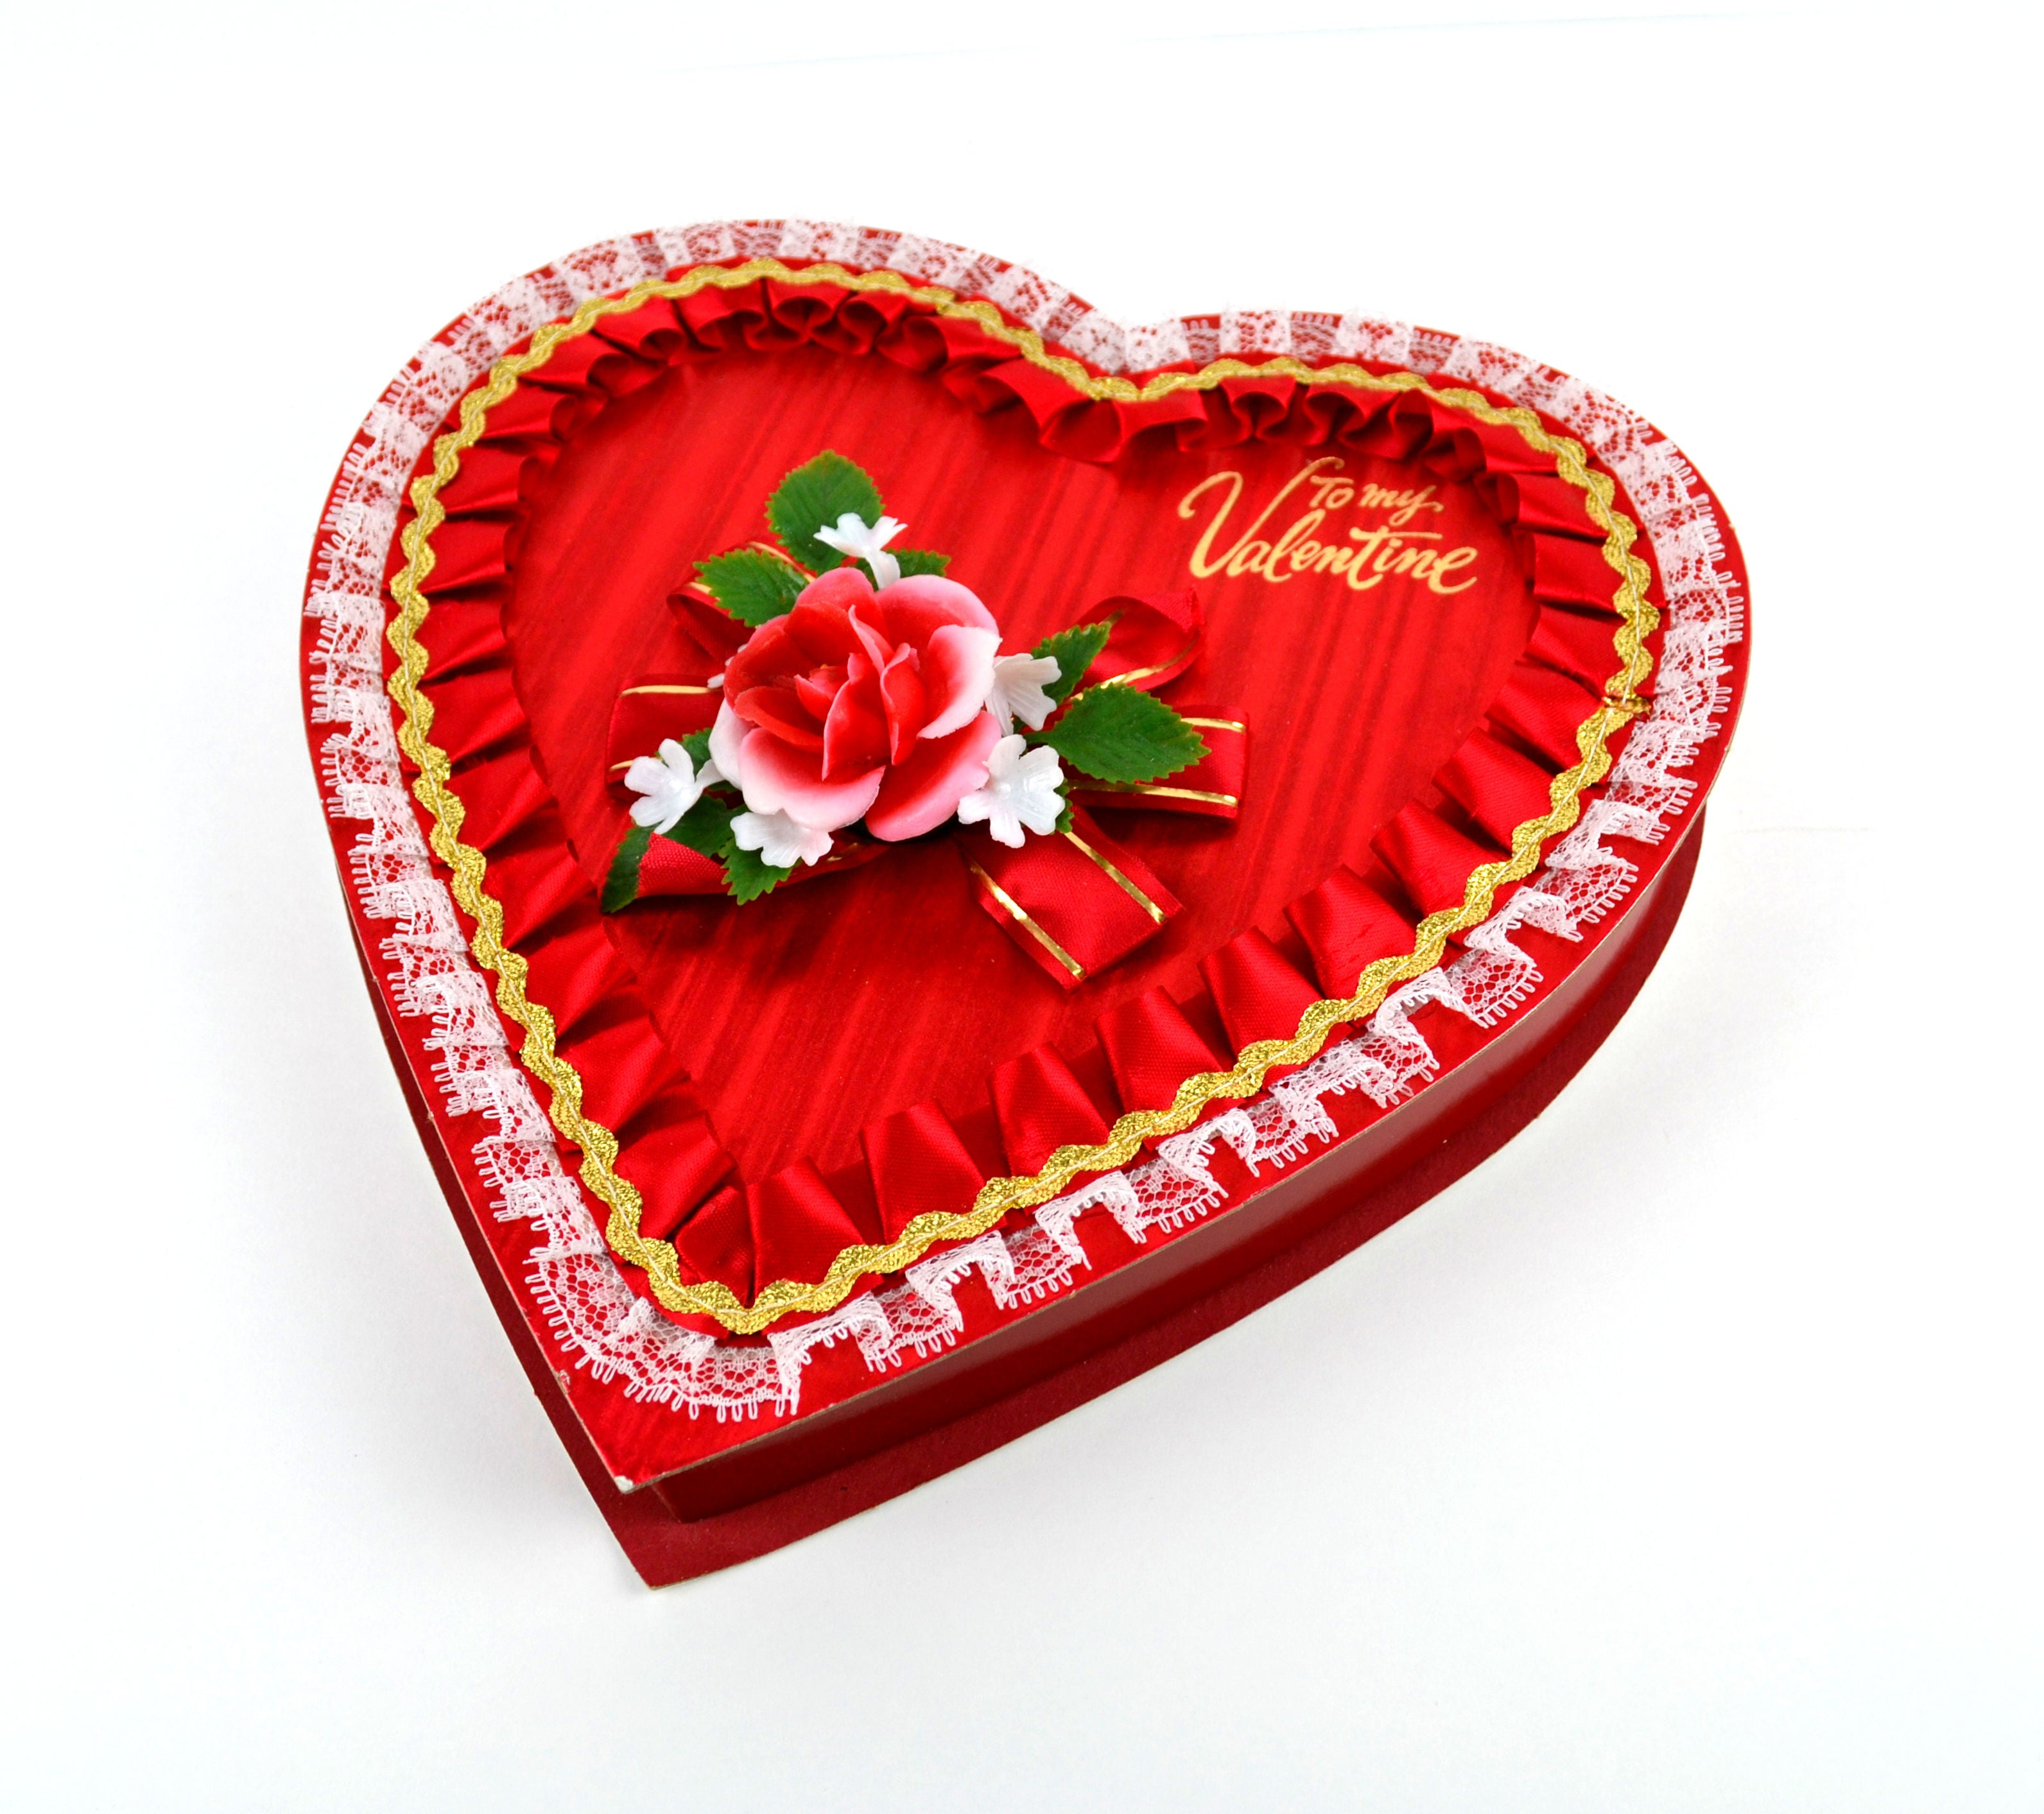 Valentine Candy Box Heart Shaped With Red And White Plastic